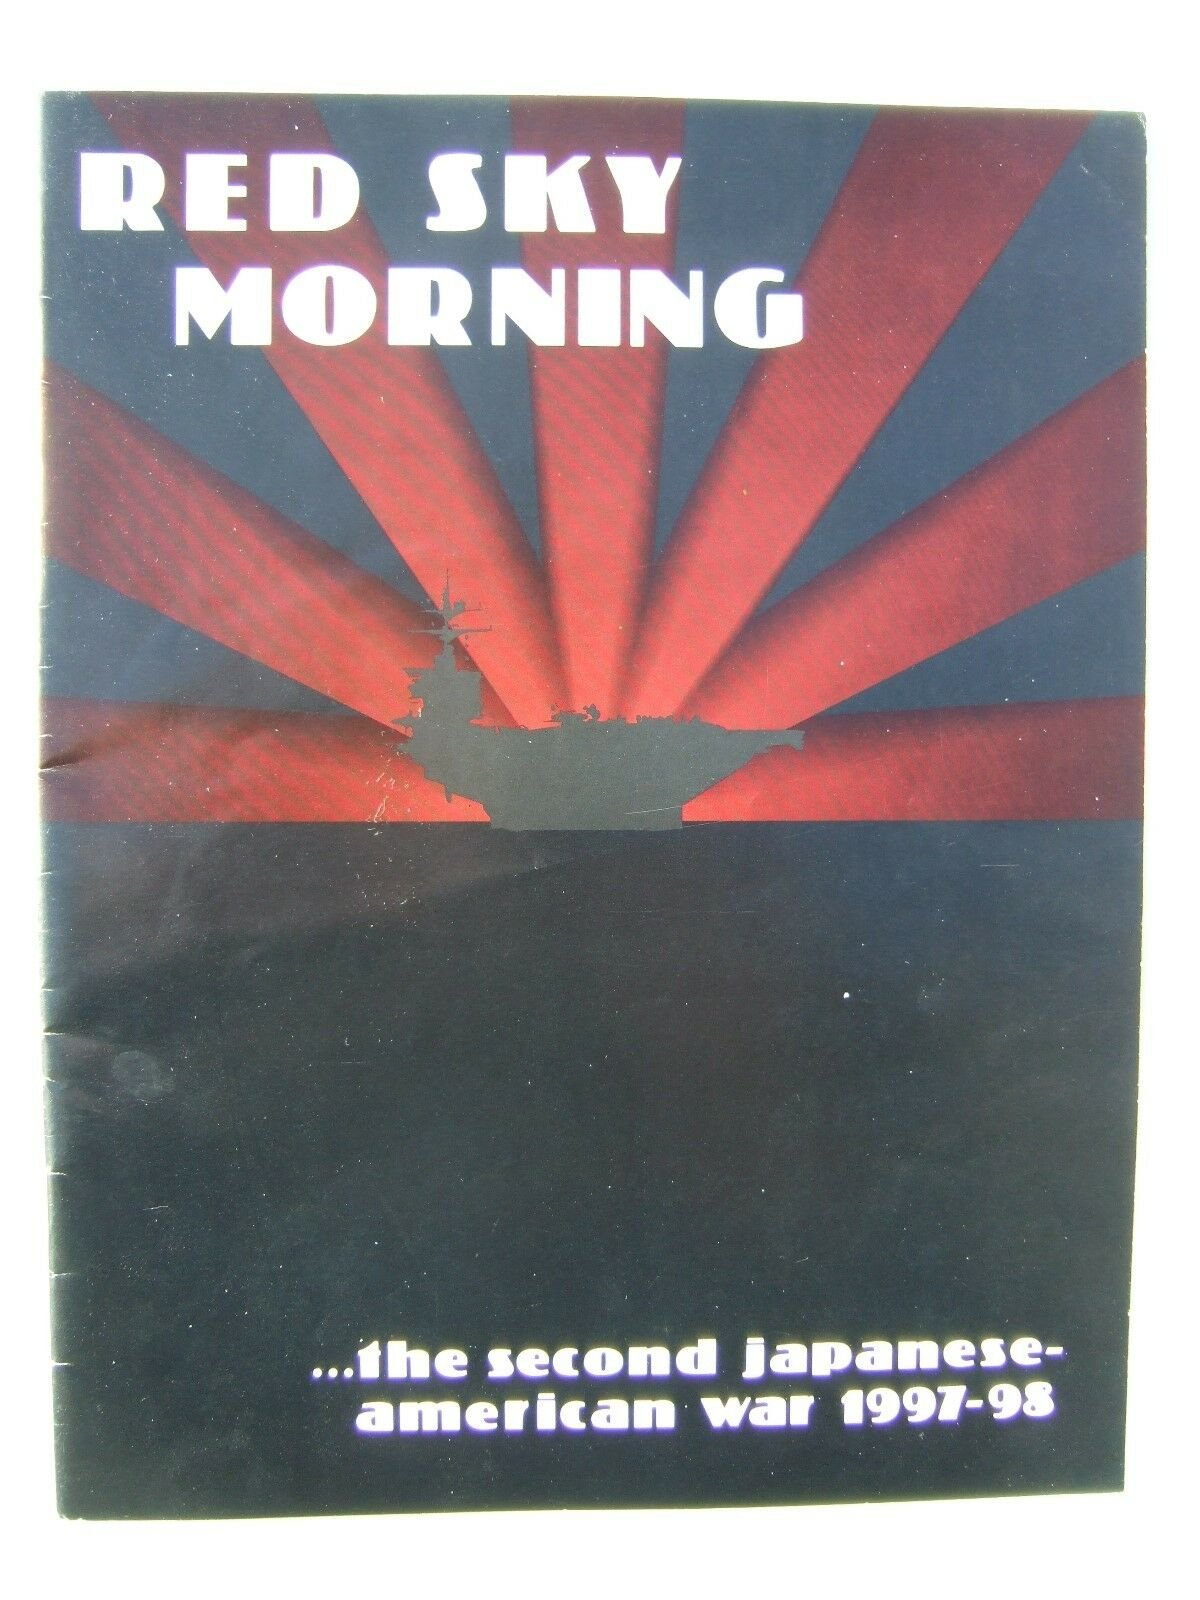 Red Sky Morning, the second japanese american war 1997-98 by XTR